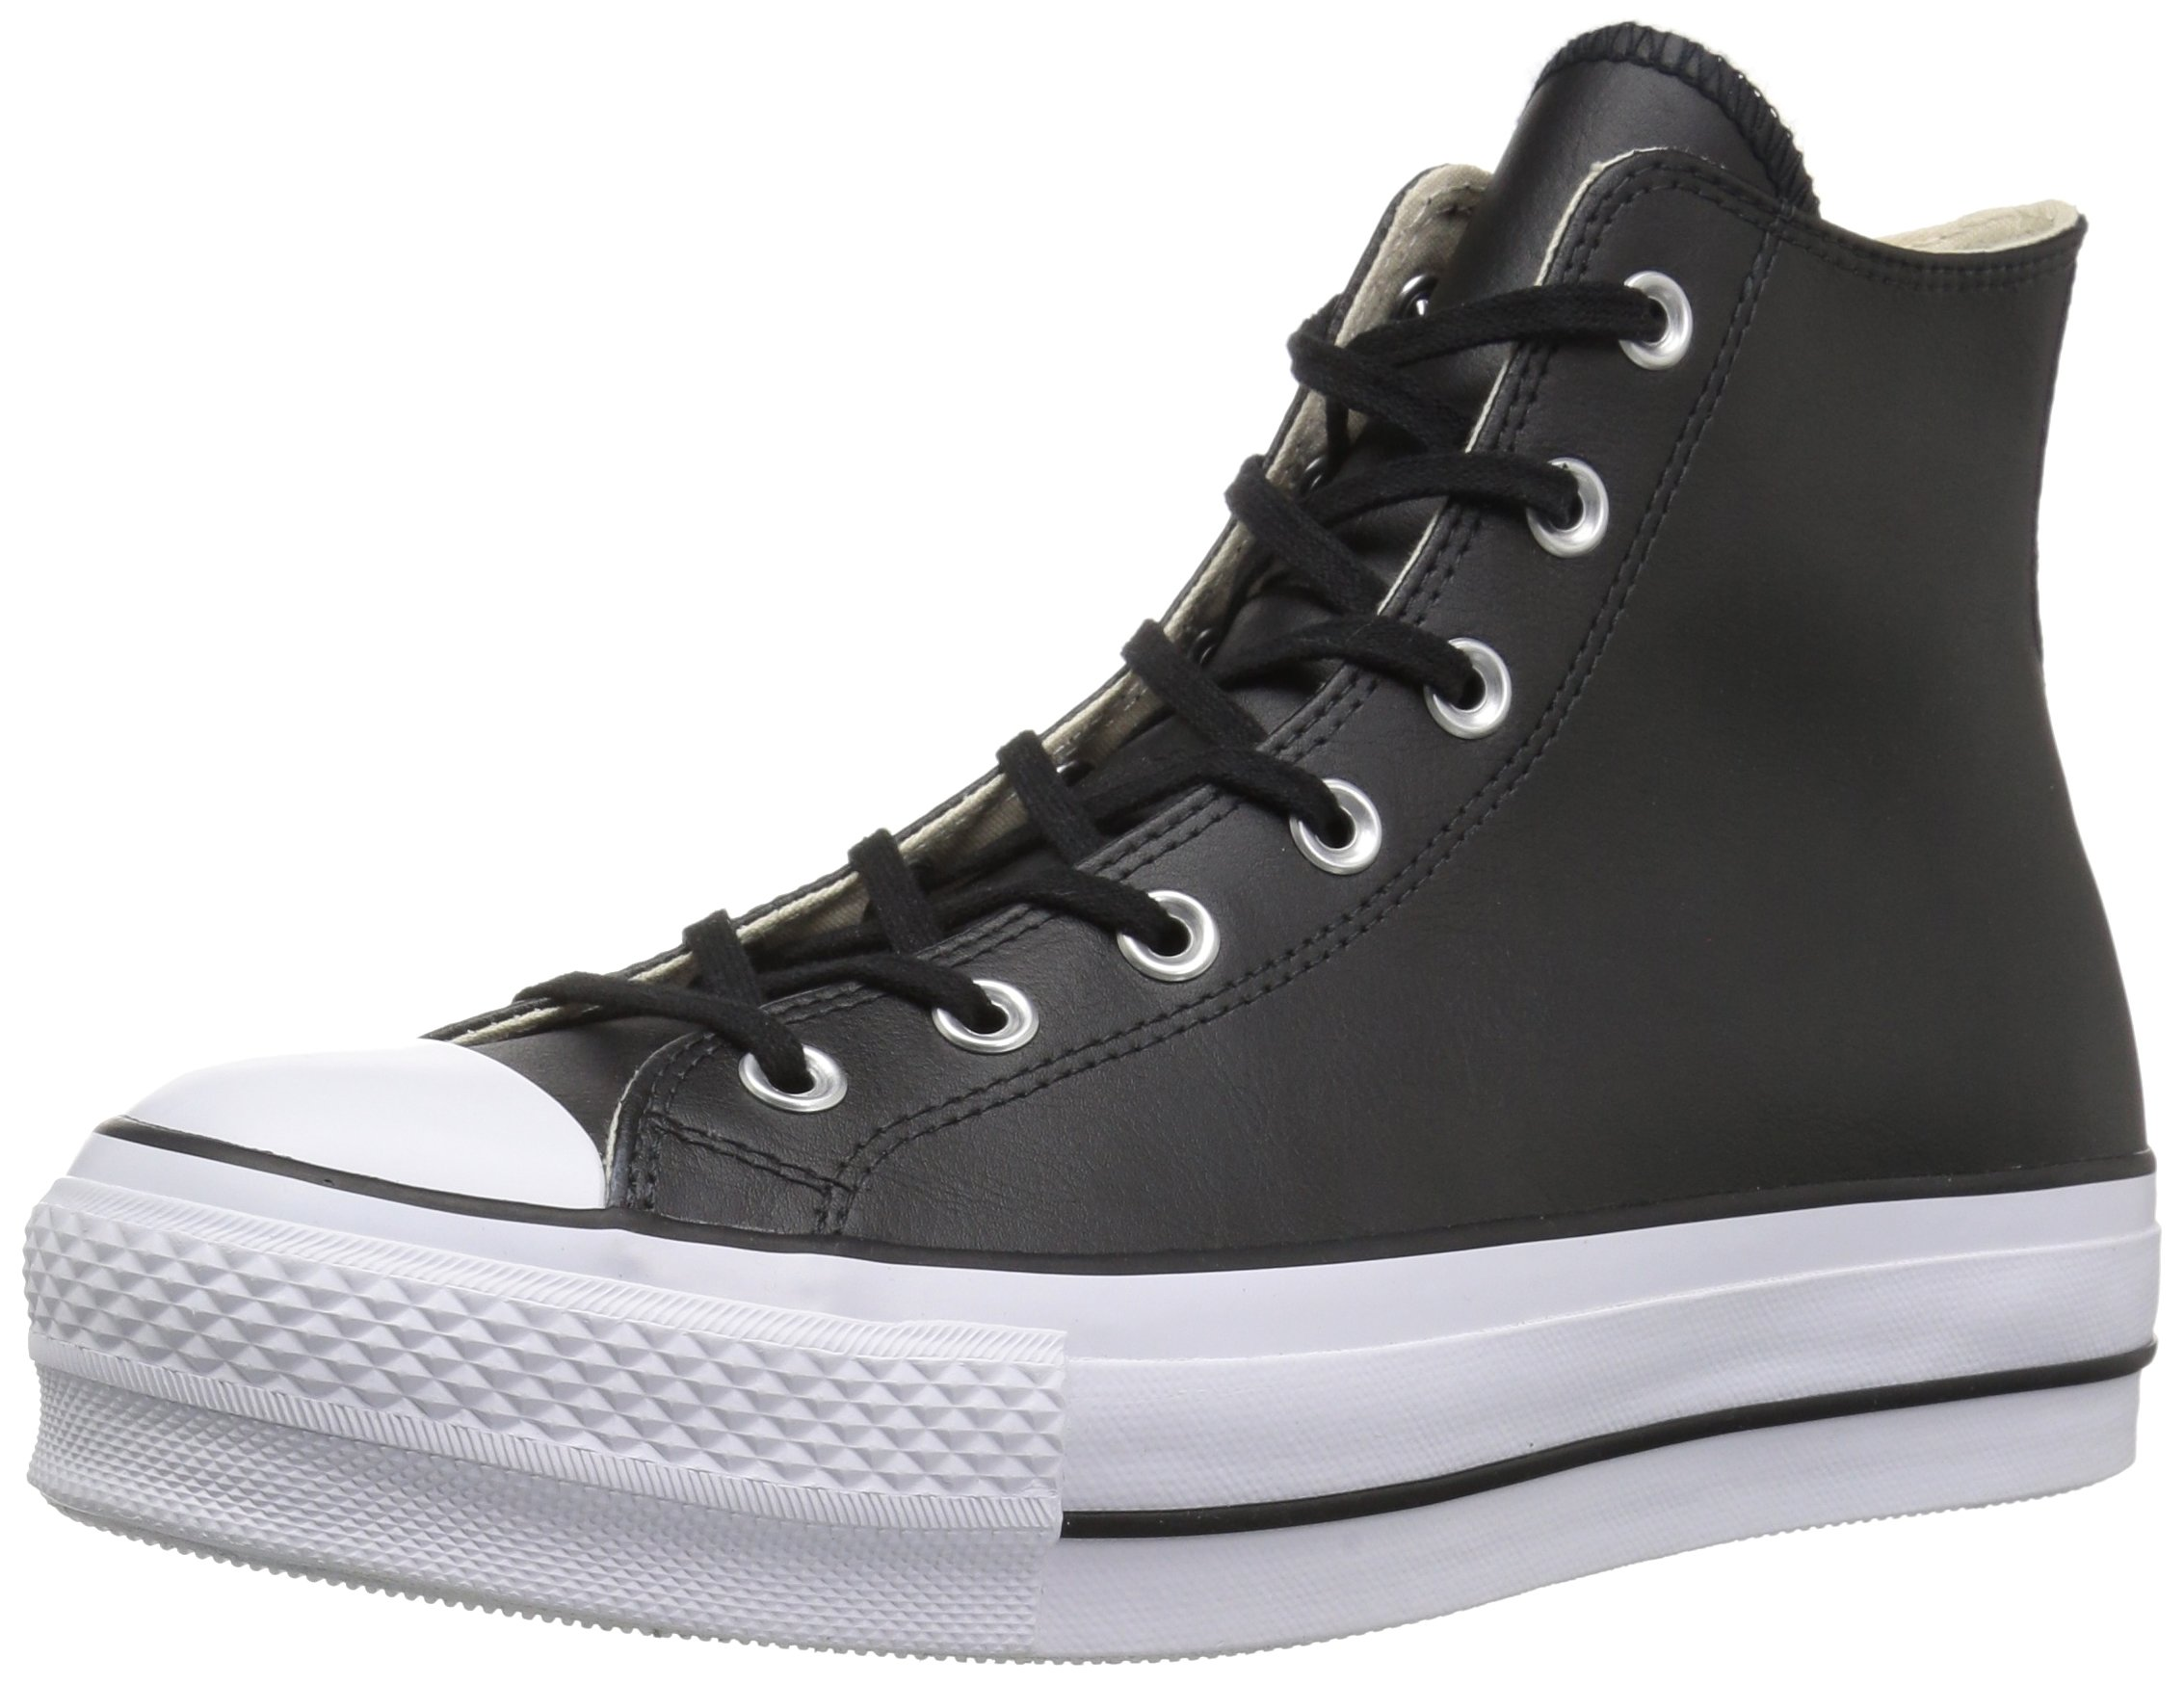 4ec6682769 Galleon - Converse Women's Chuck Taylor All Star Lift Clean HIGH TOP Sneaker,  Black/White, 8 M US